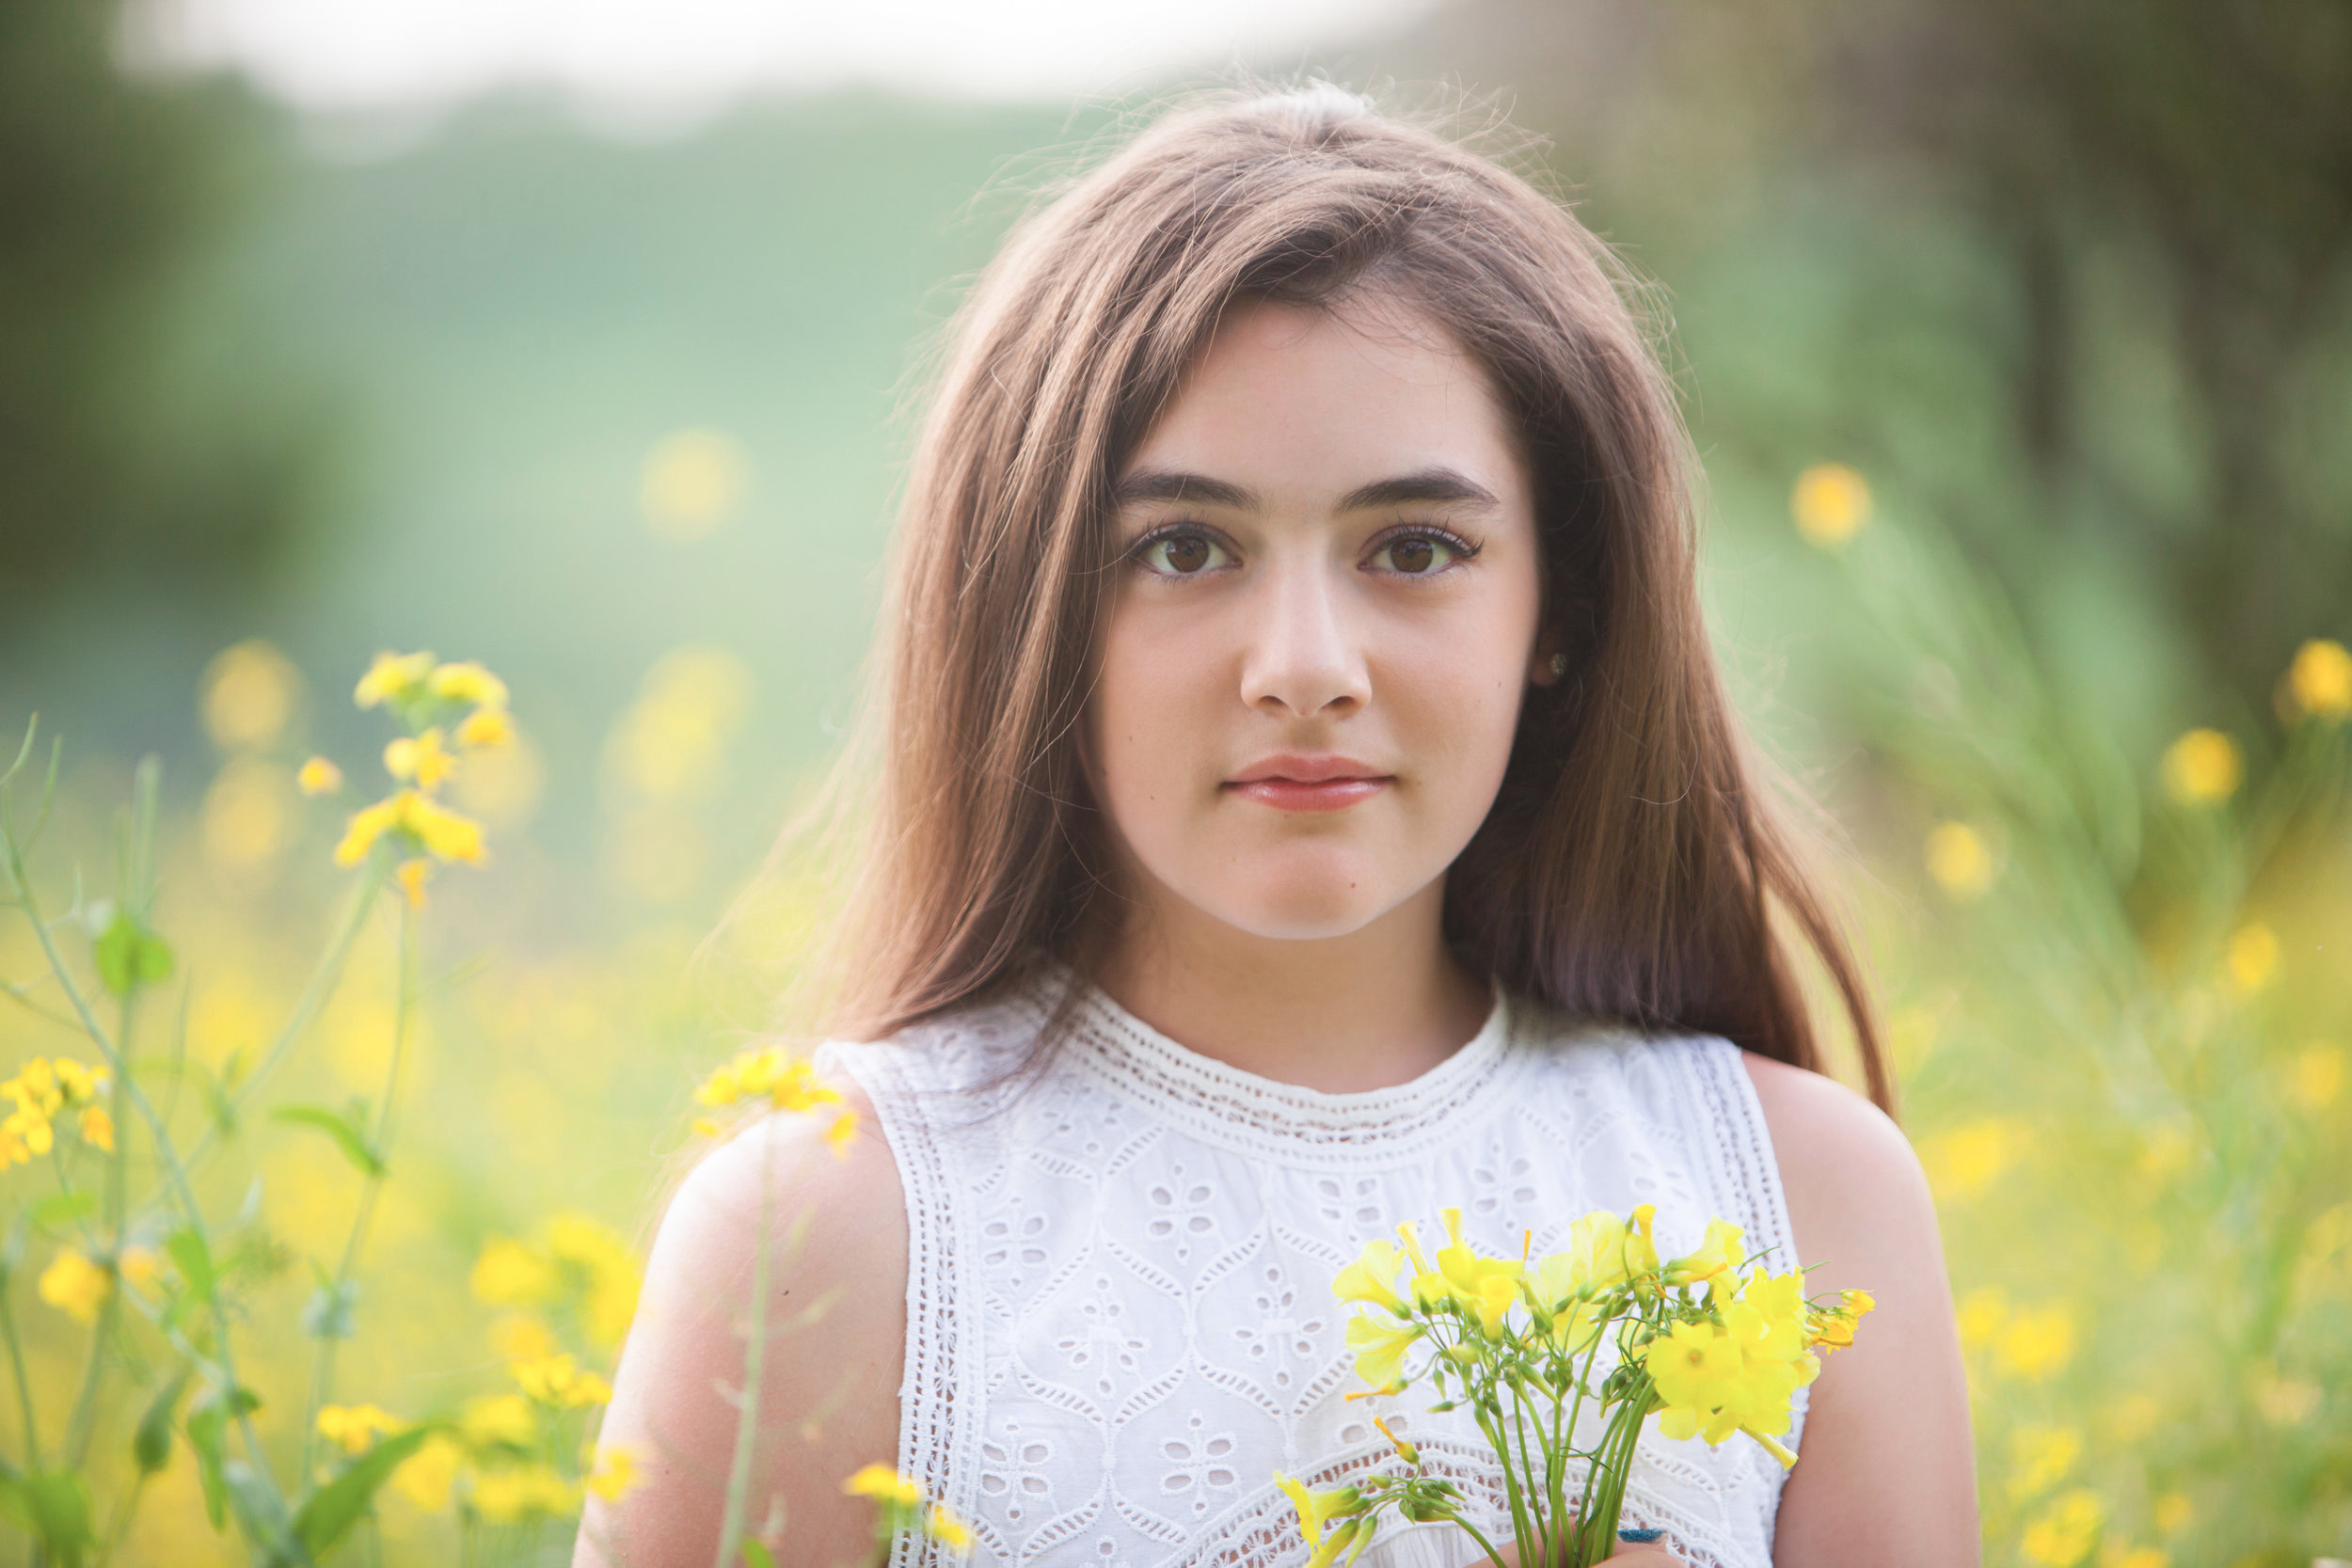 Pretty girl with long brown hair holding yellow flowers outdoors